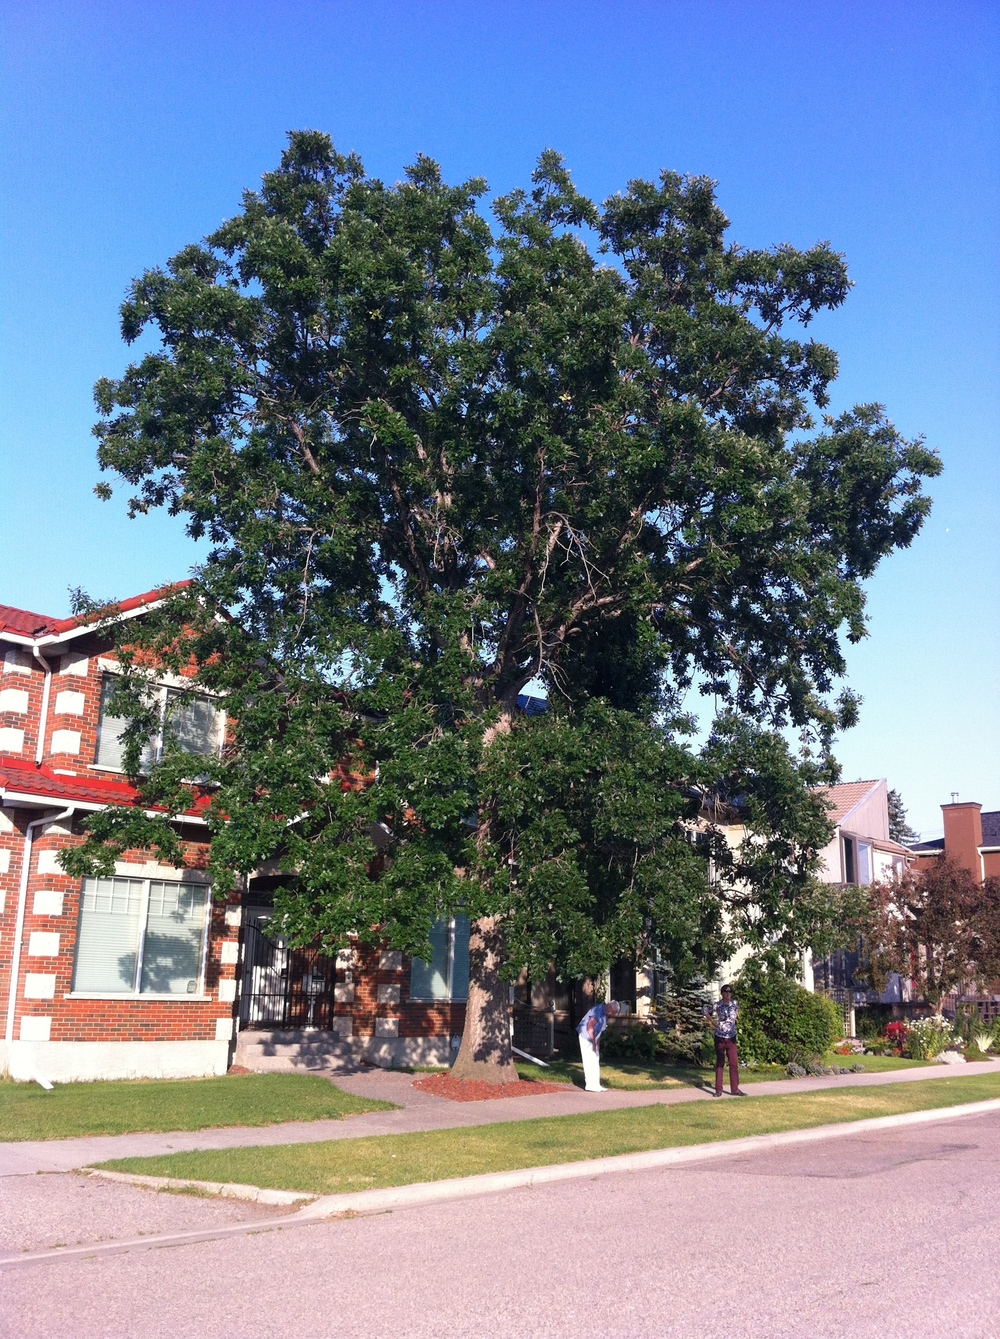 This Bur Oak is a heritage tree on Crescent Road was planted in 1937.